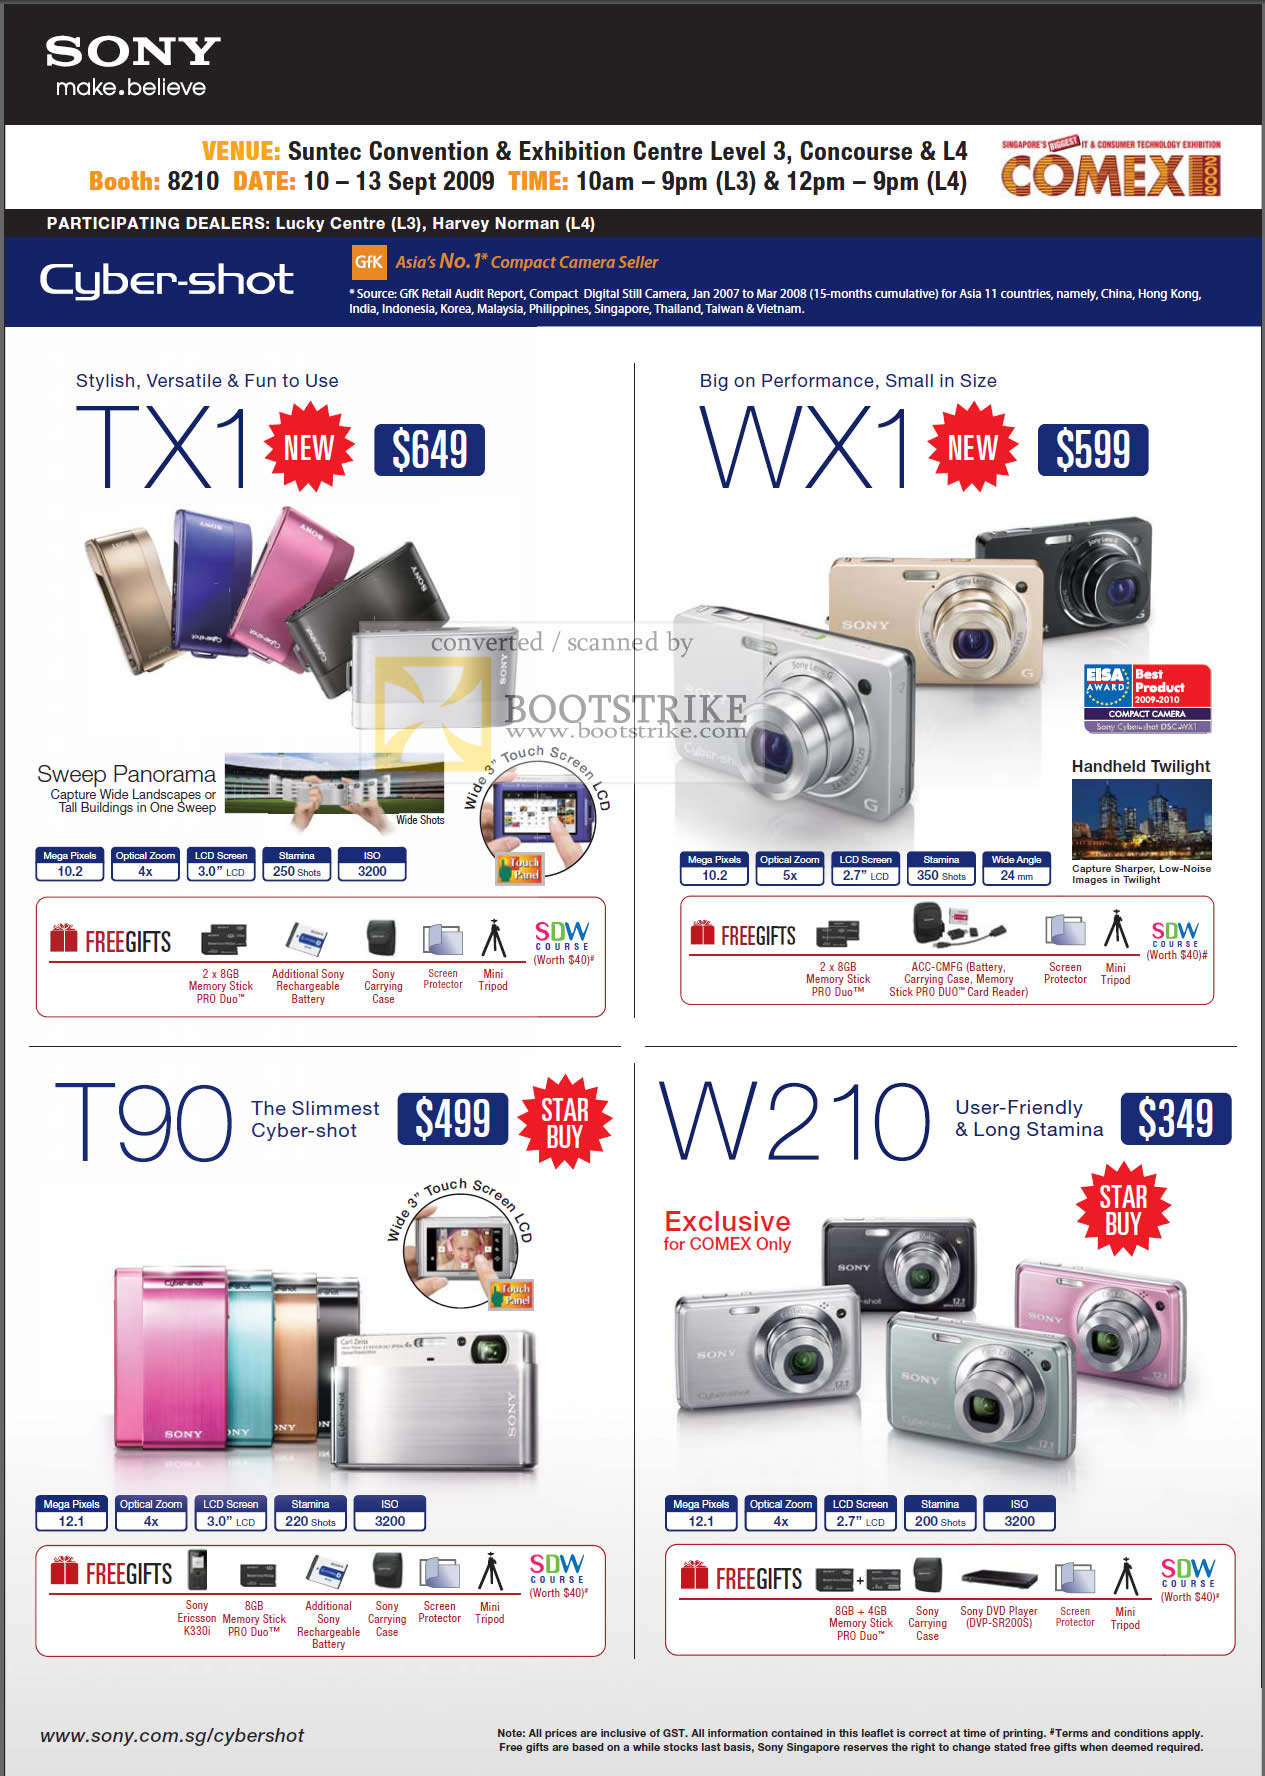 Comex 2009 price list image brochure of Sony Cybershot Digital Cameras TX1 WX1 T90 W210